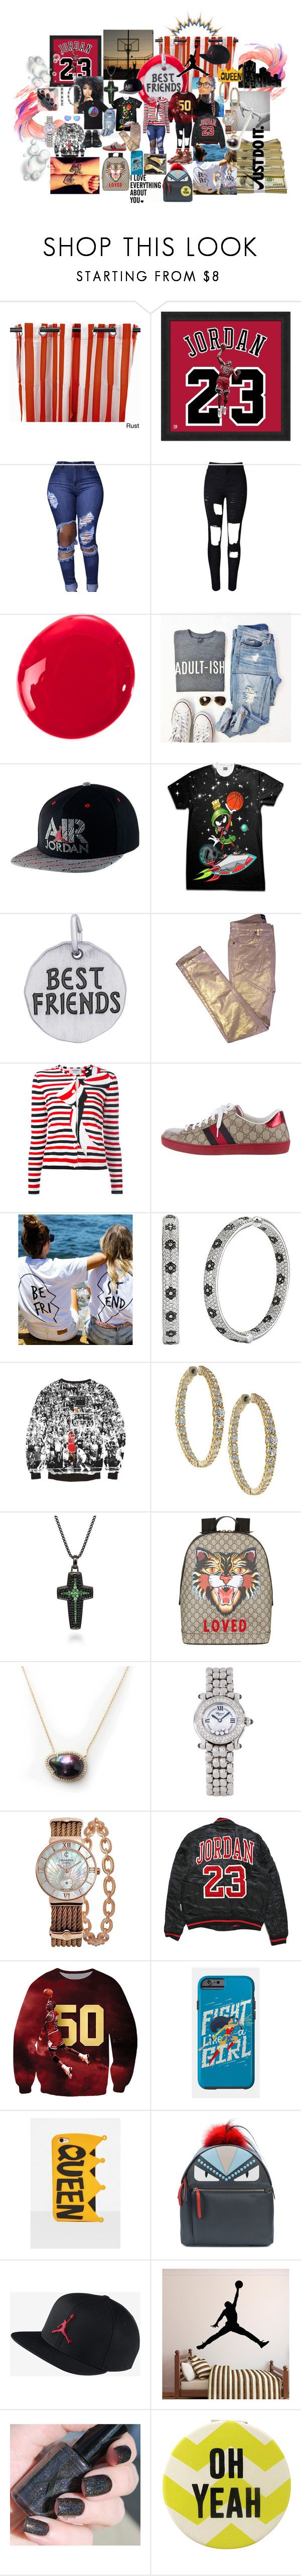 Just Do It With Your Best Friend by mscovered on Polyvore featuring Thom Browne, Zadig & Voltaire, WithChic, Fendi, Gucci, Jordan Alexander, Chopard, Charriol, Rembrandt Charms and NIKE